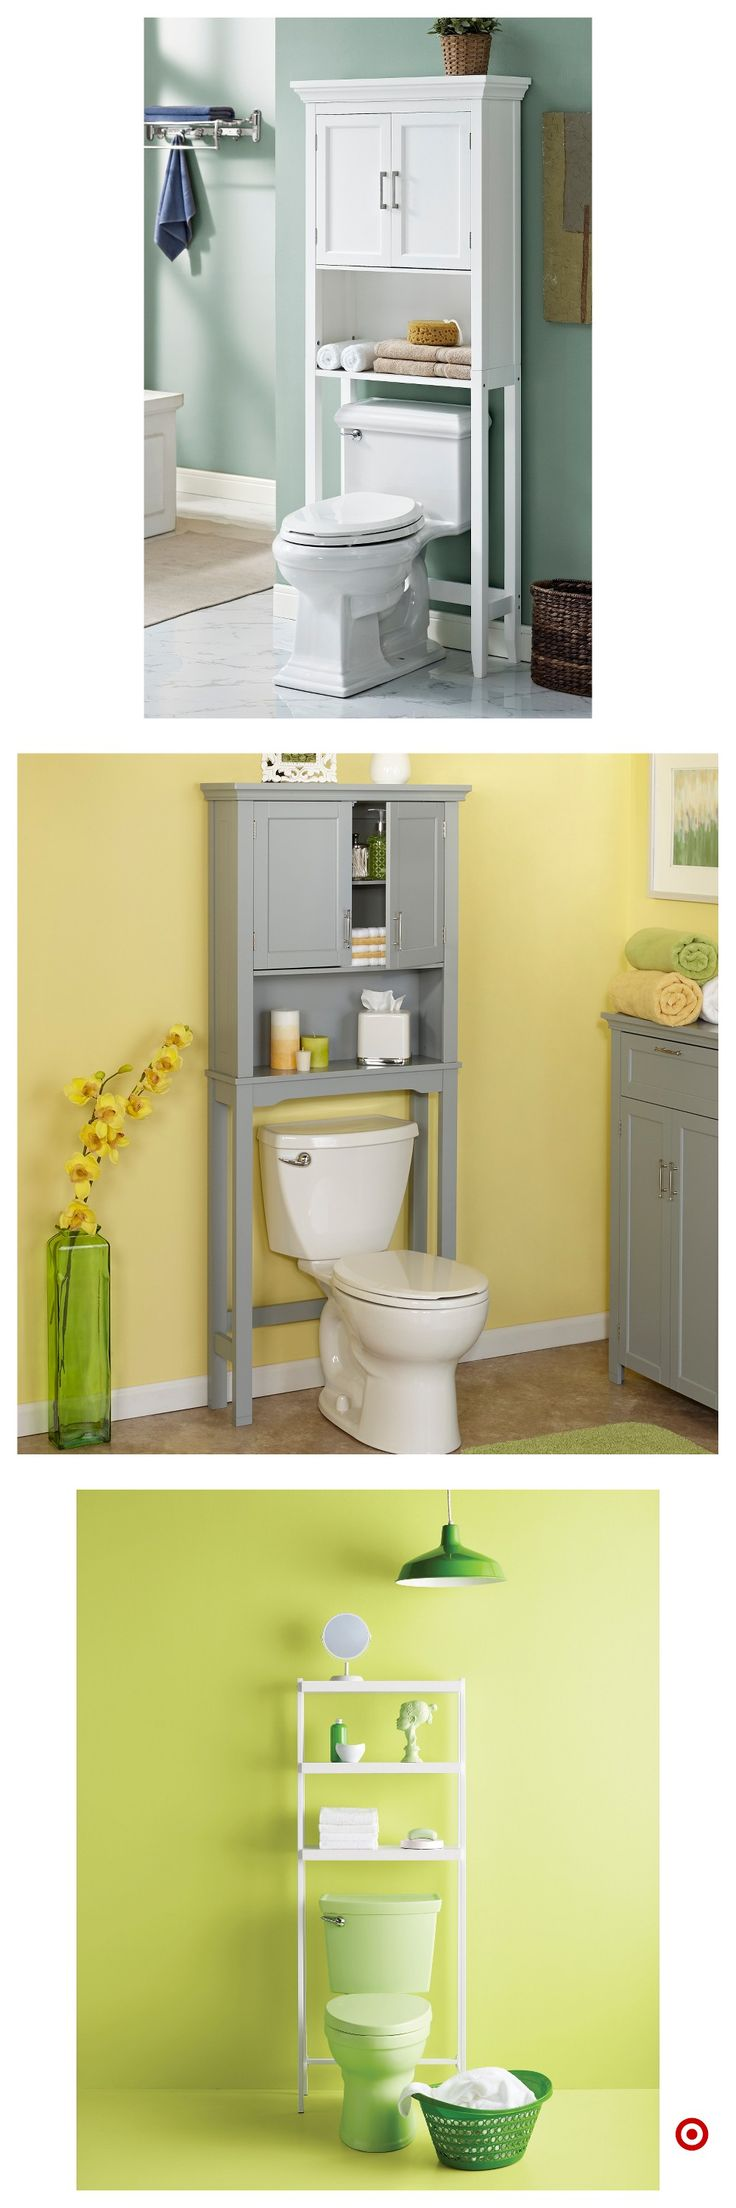 Online Retailer Of Bathroom Vanities, Vanity For Less Announces Free Shipping On All Products